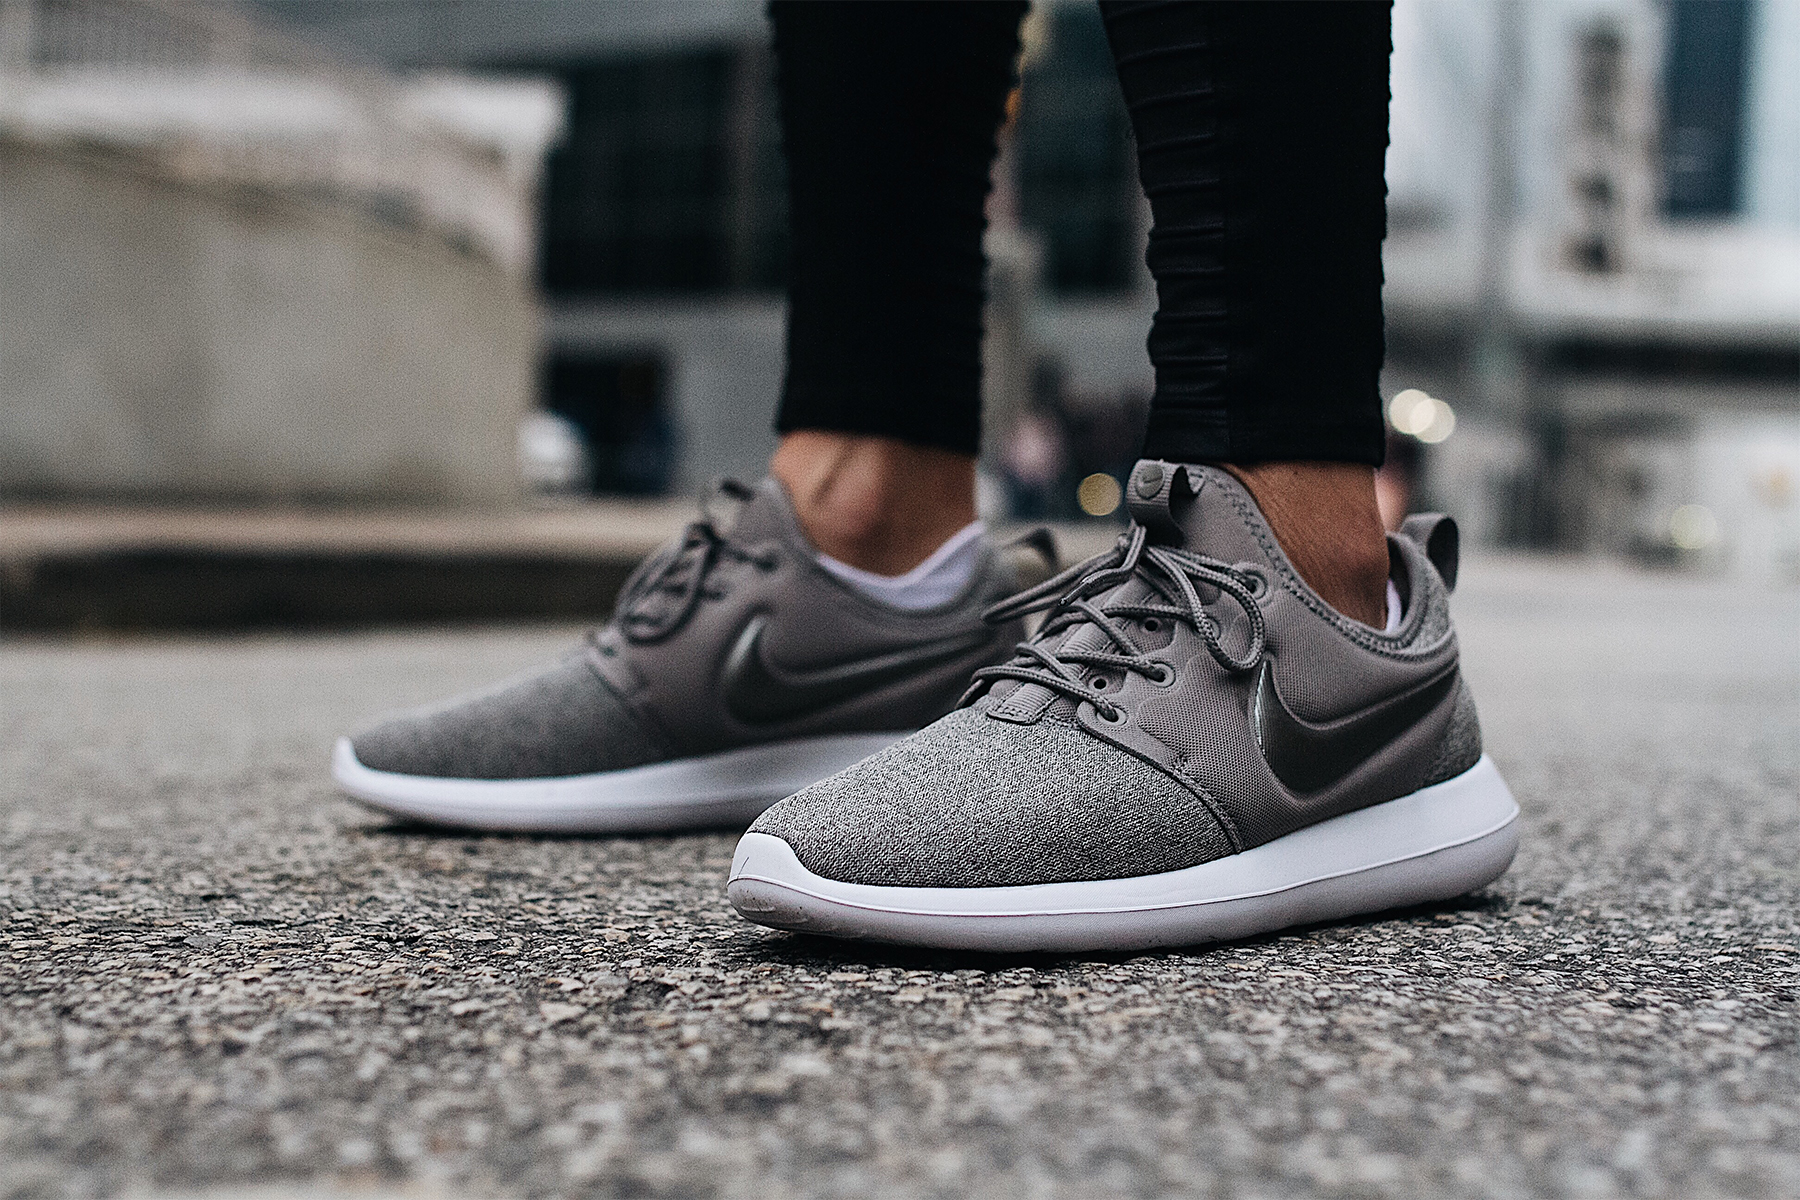 Nike Roshe Two Knit Grey Sneakers Fashion Jackson Dallas Blogger Fashion Blogger Street Style